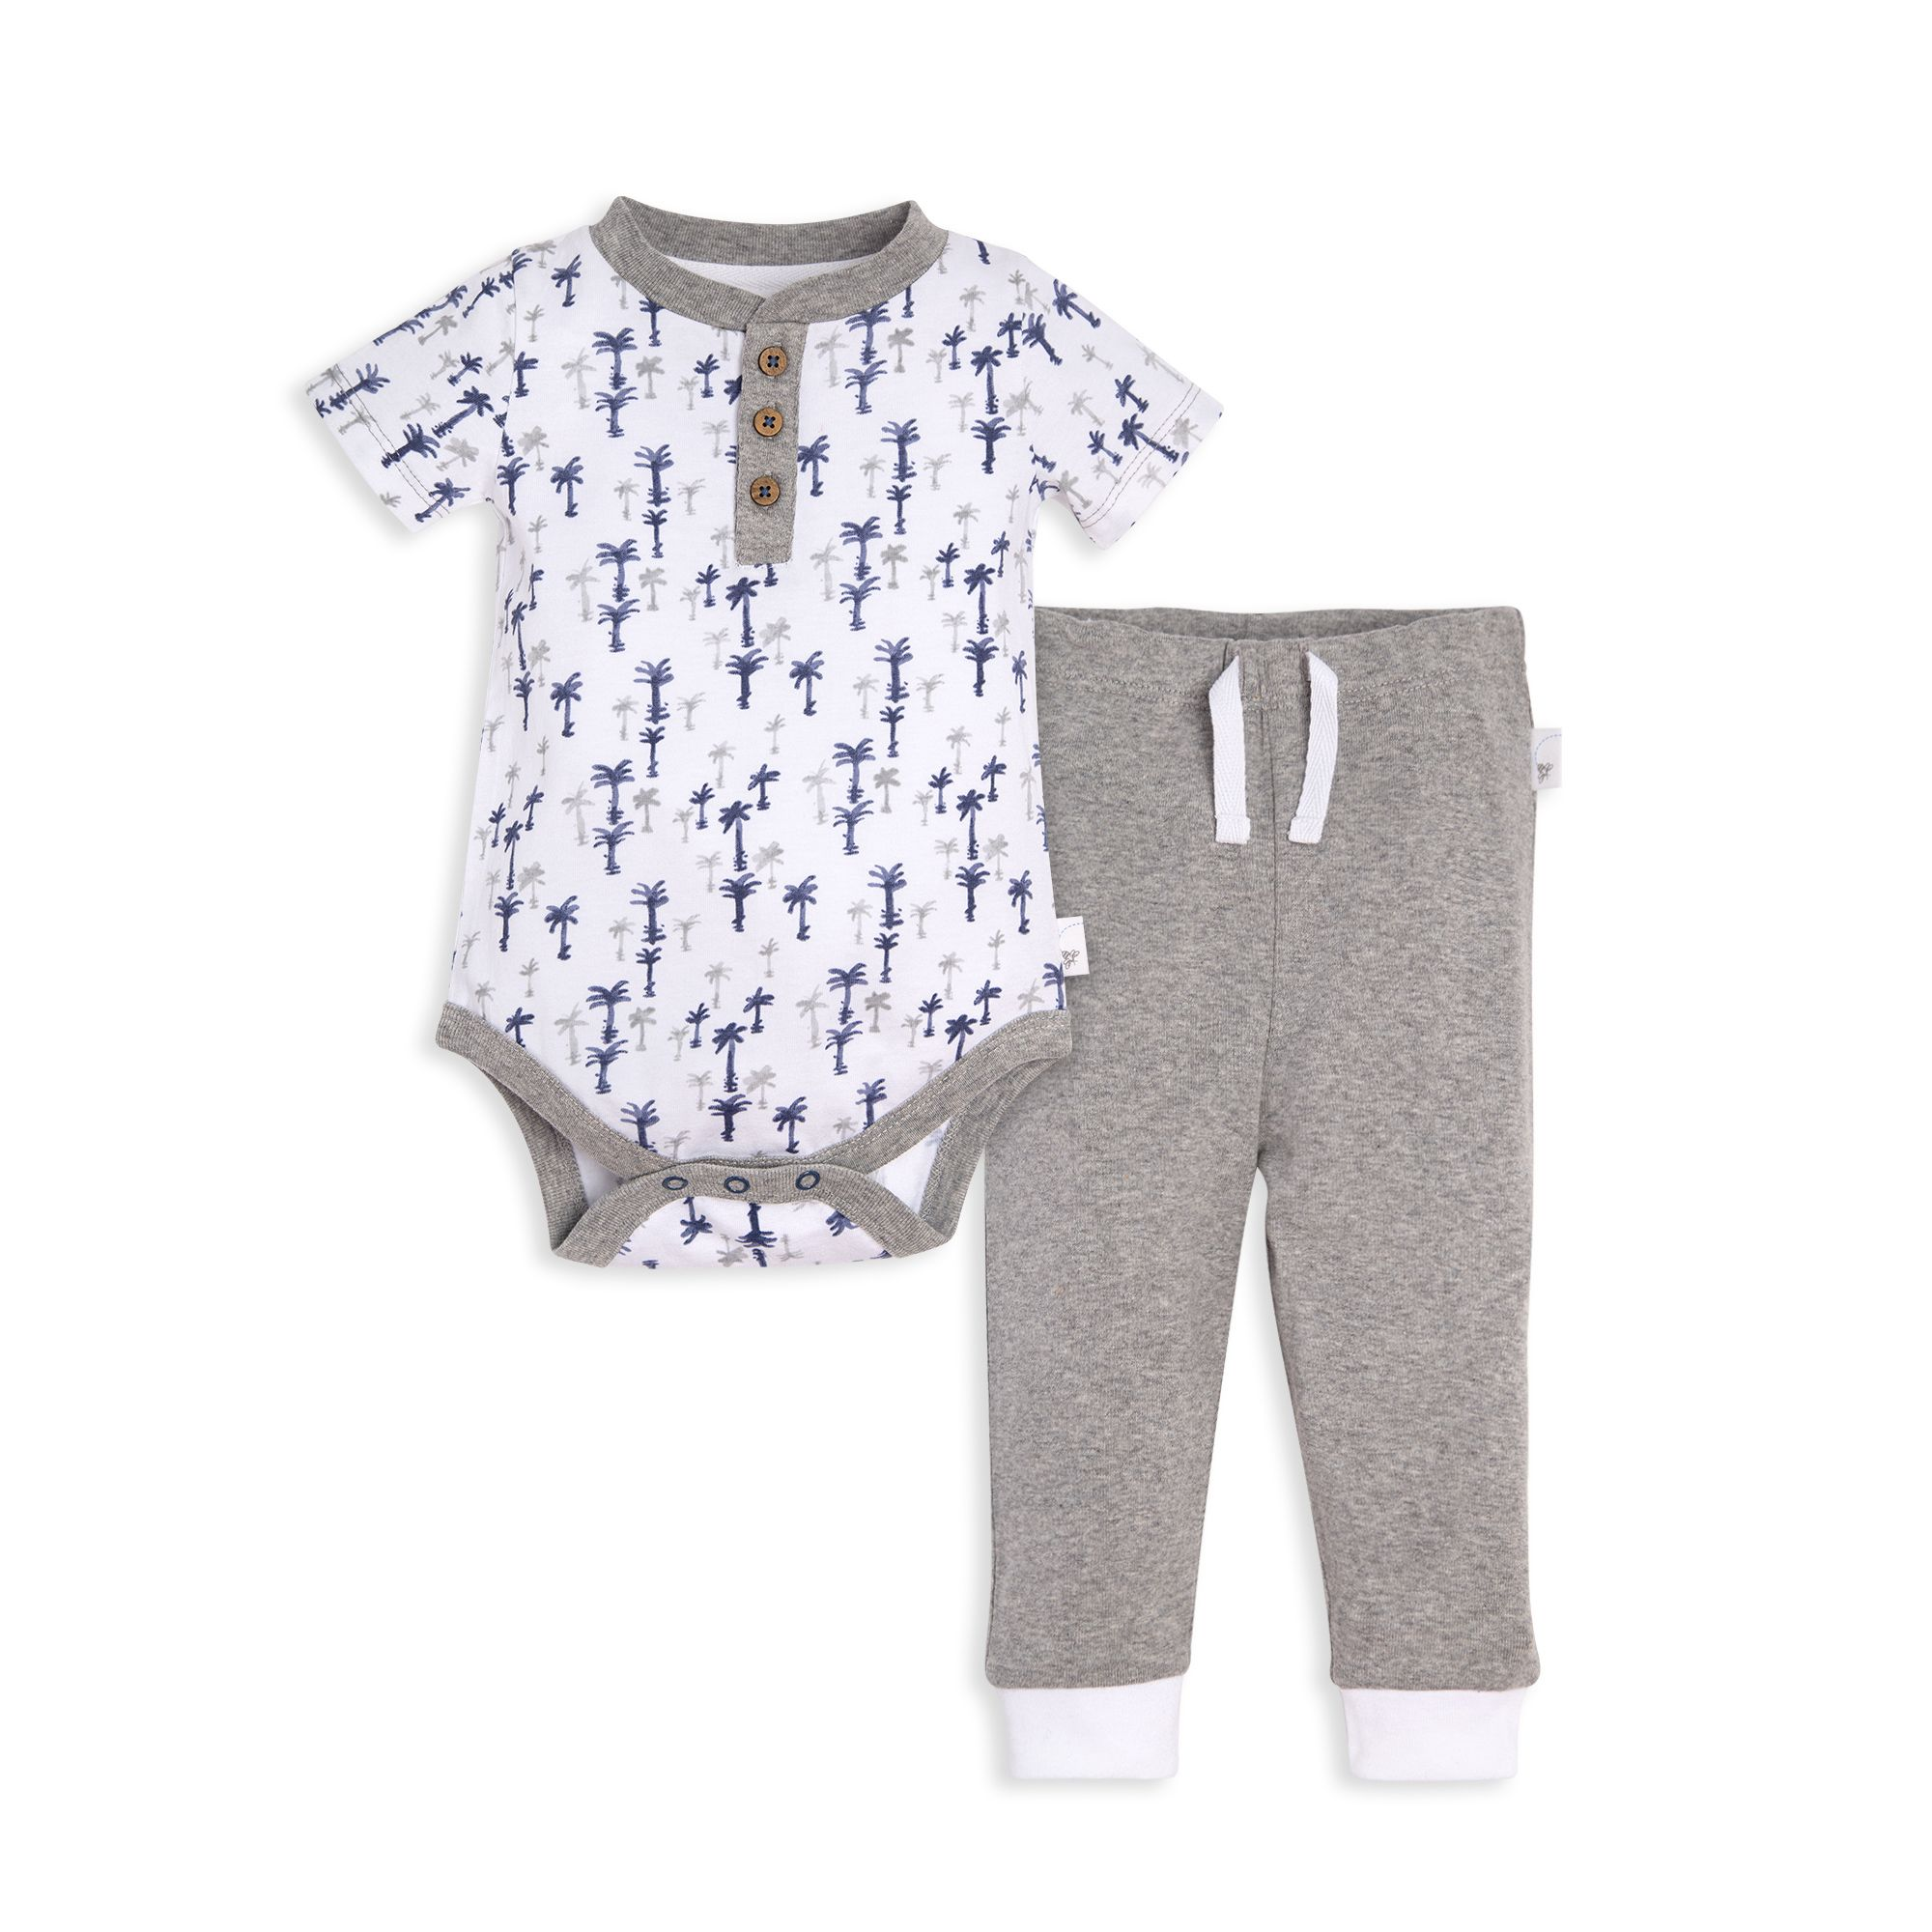 Breezy Palm Trees Organic Baby Bodysuit and Pant Set